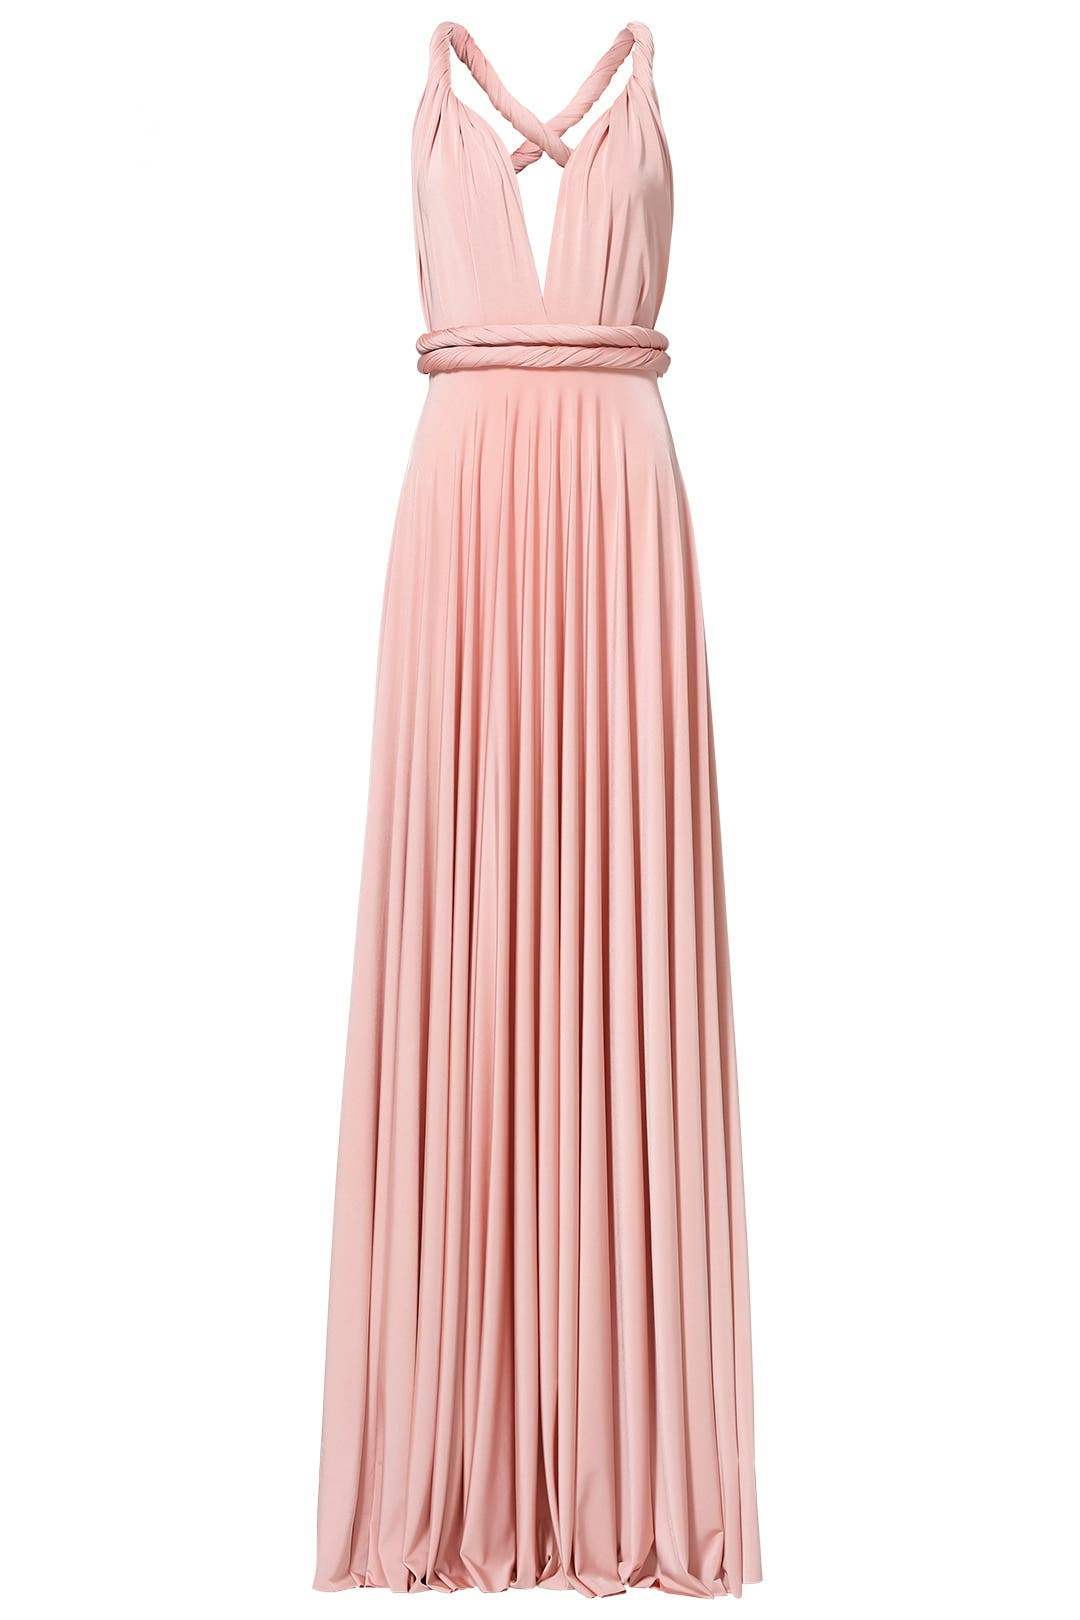 Blush Classic Convertible Gown by twobirds for $70 - $80 | Rent the ...